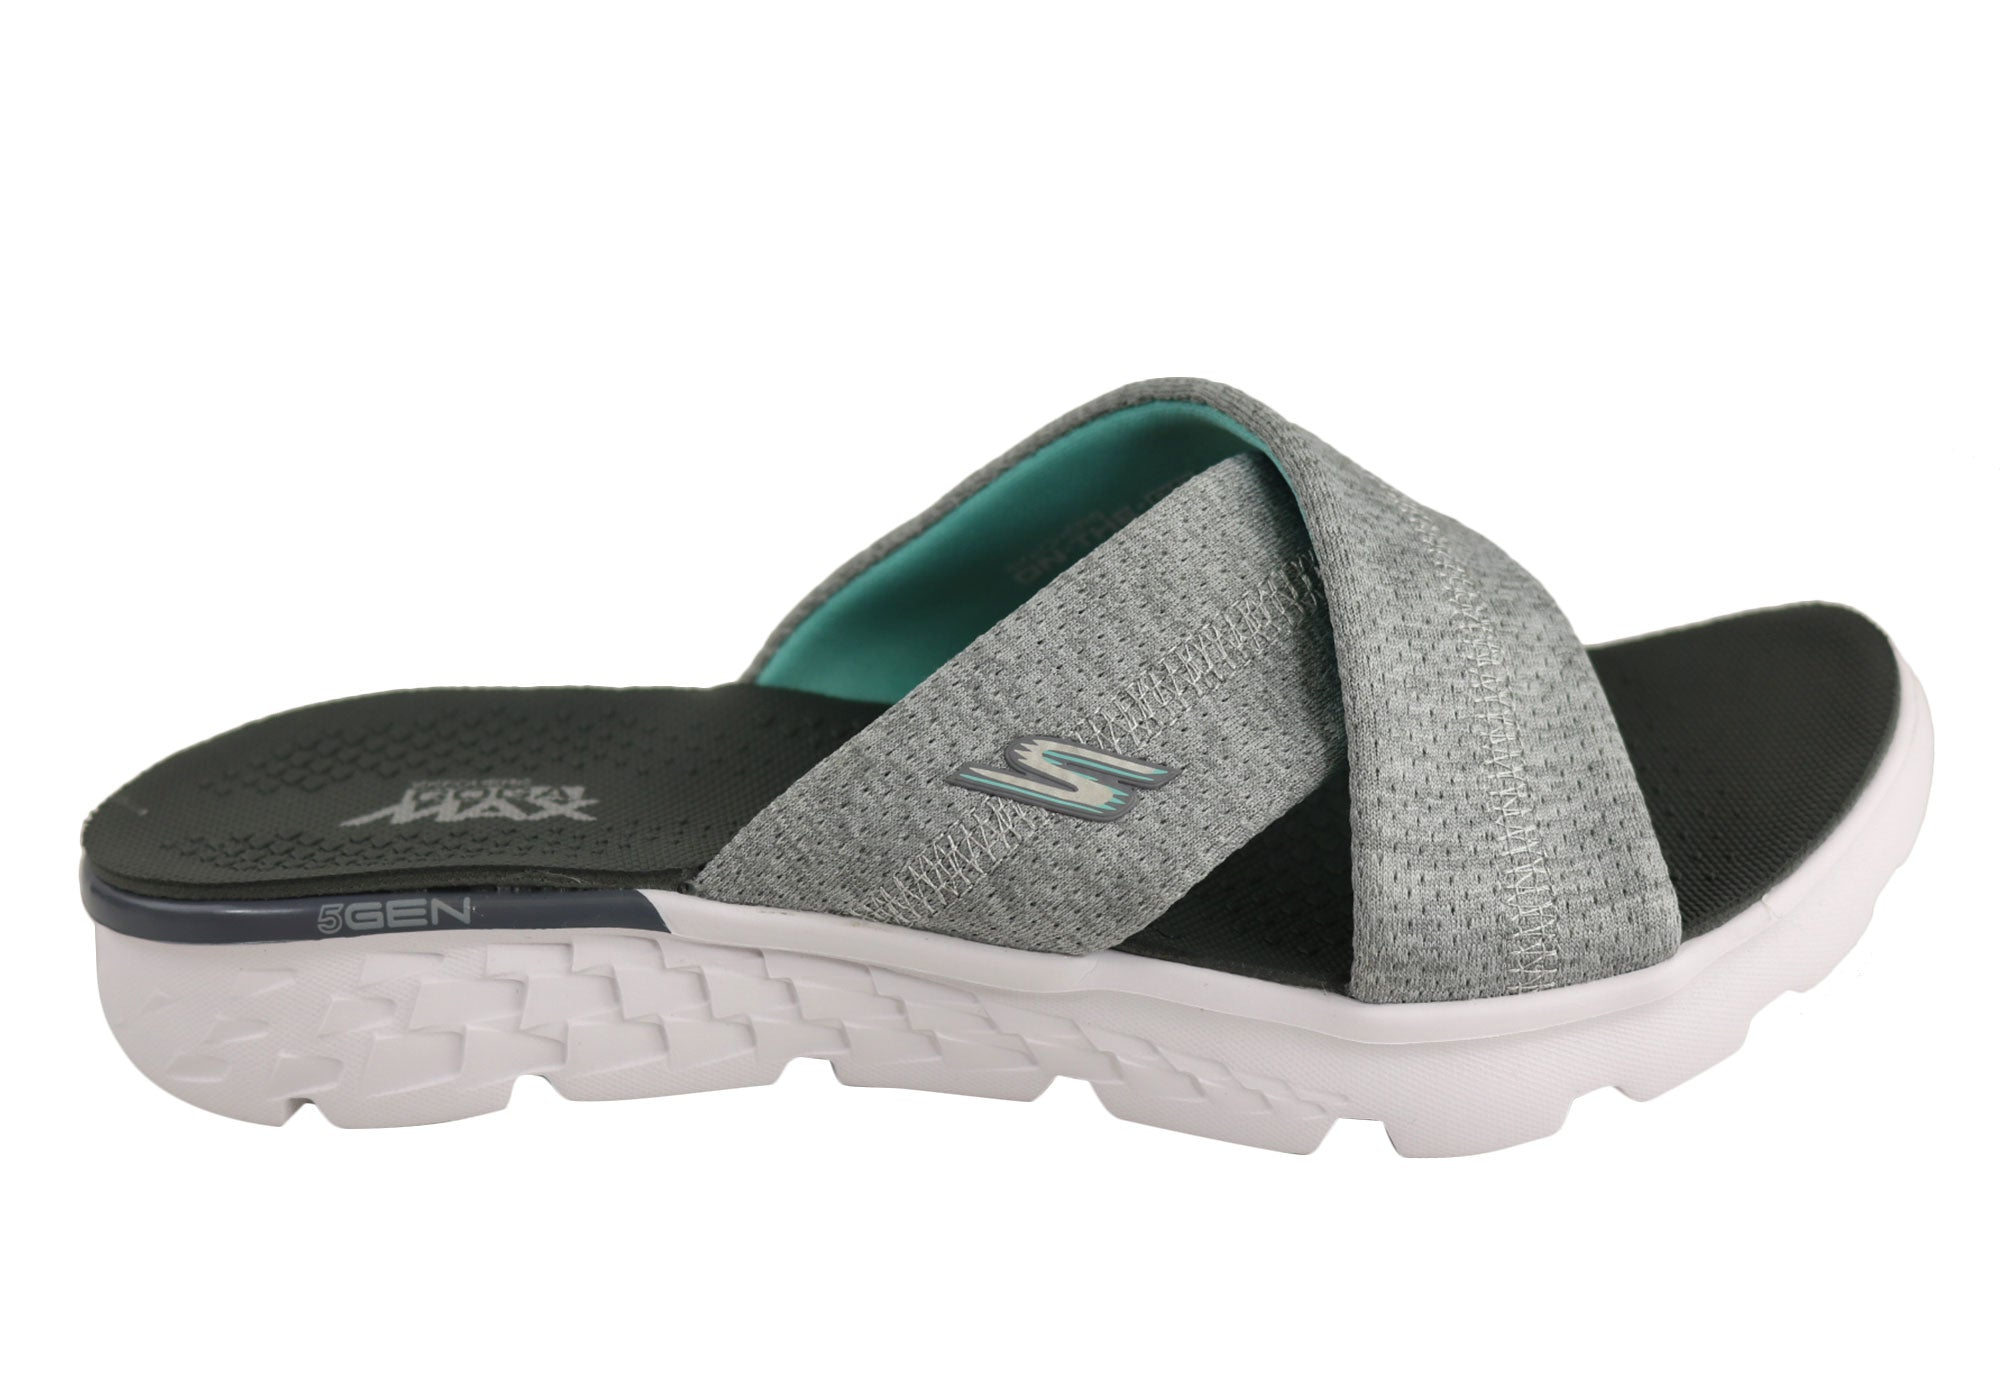 7e99b236ec8 Details about Skechers On The Go 400 Blissful Womens Comfortable Flat Slide  Sandals